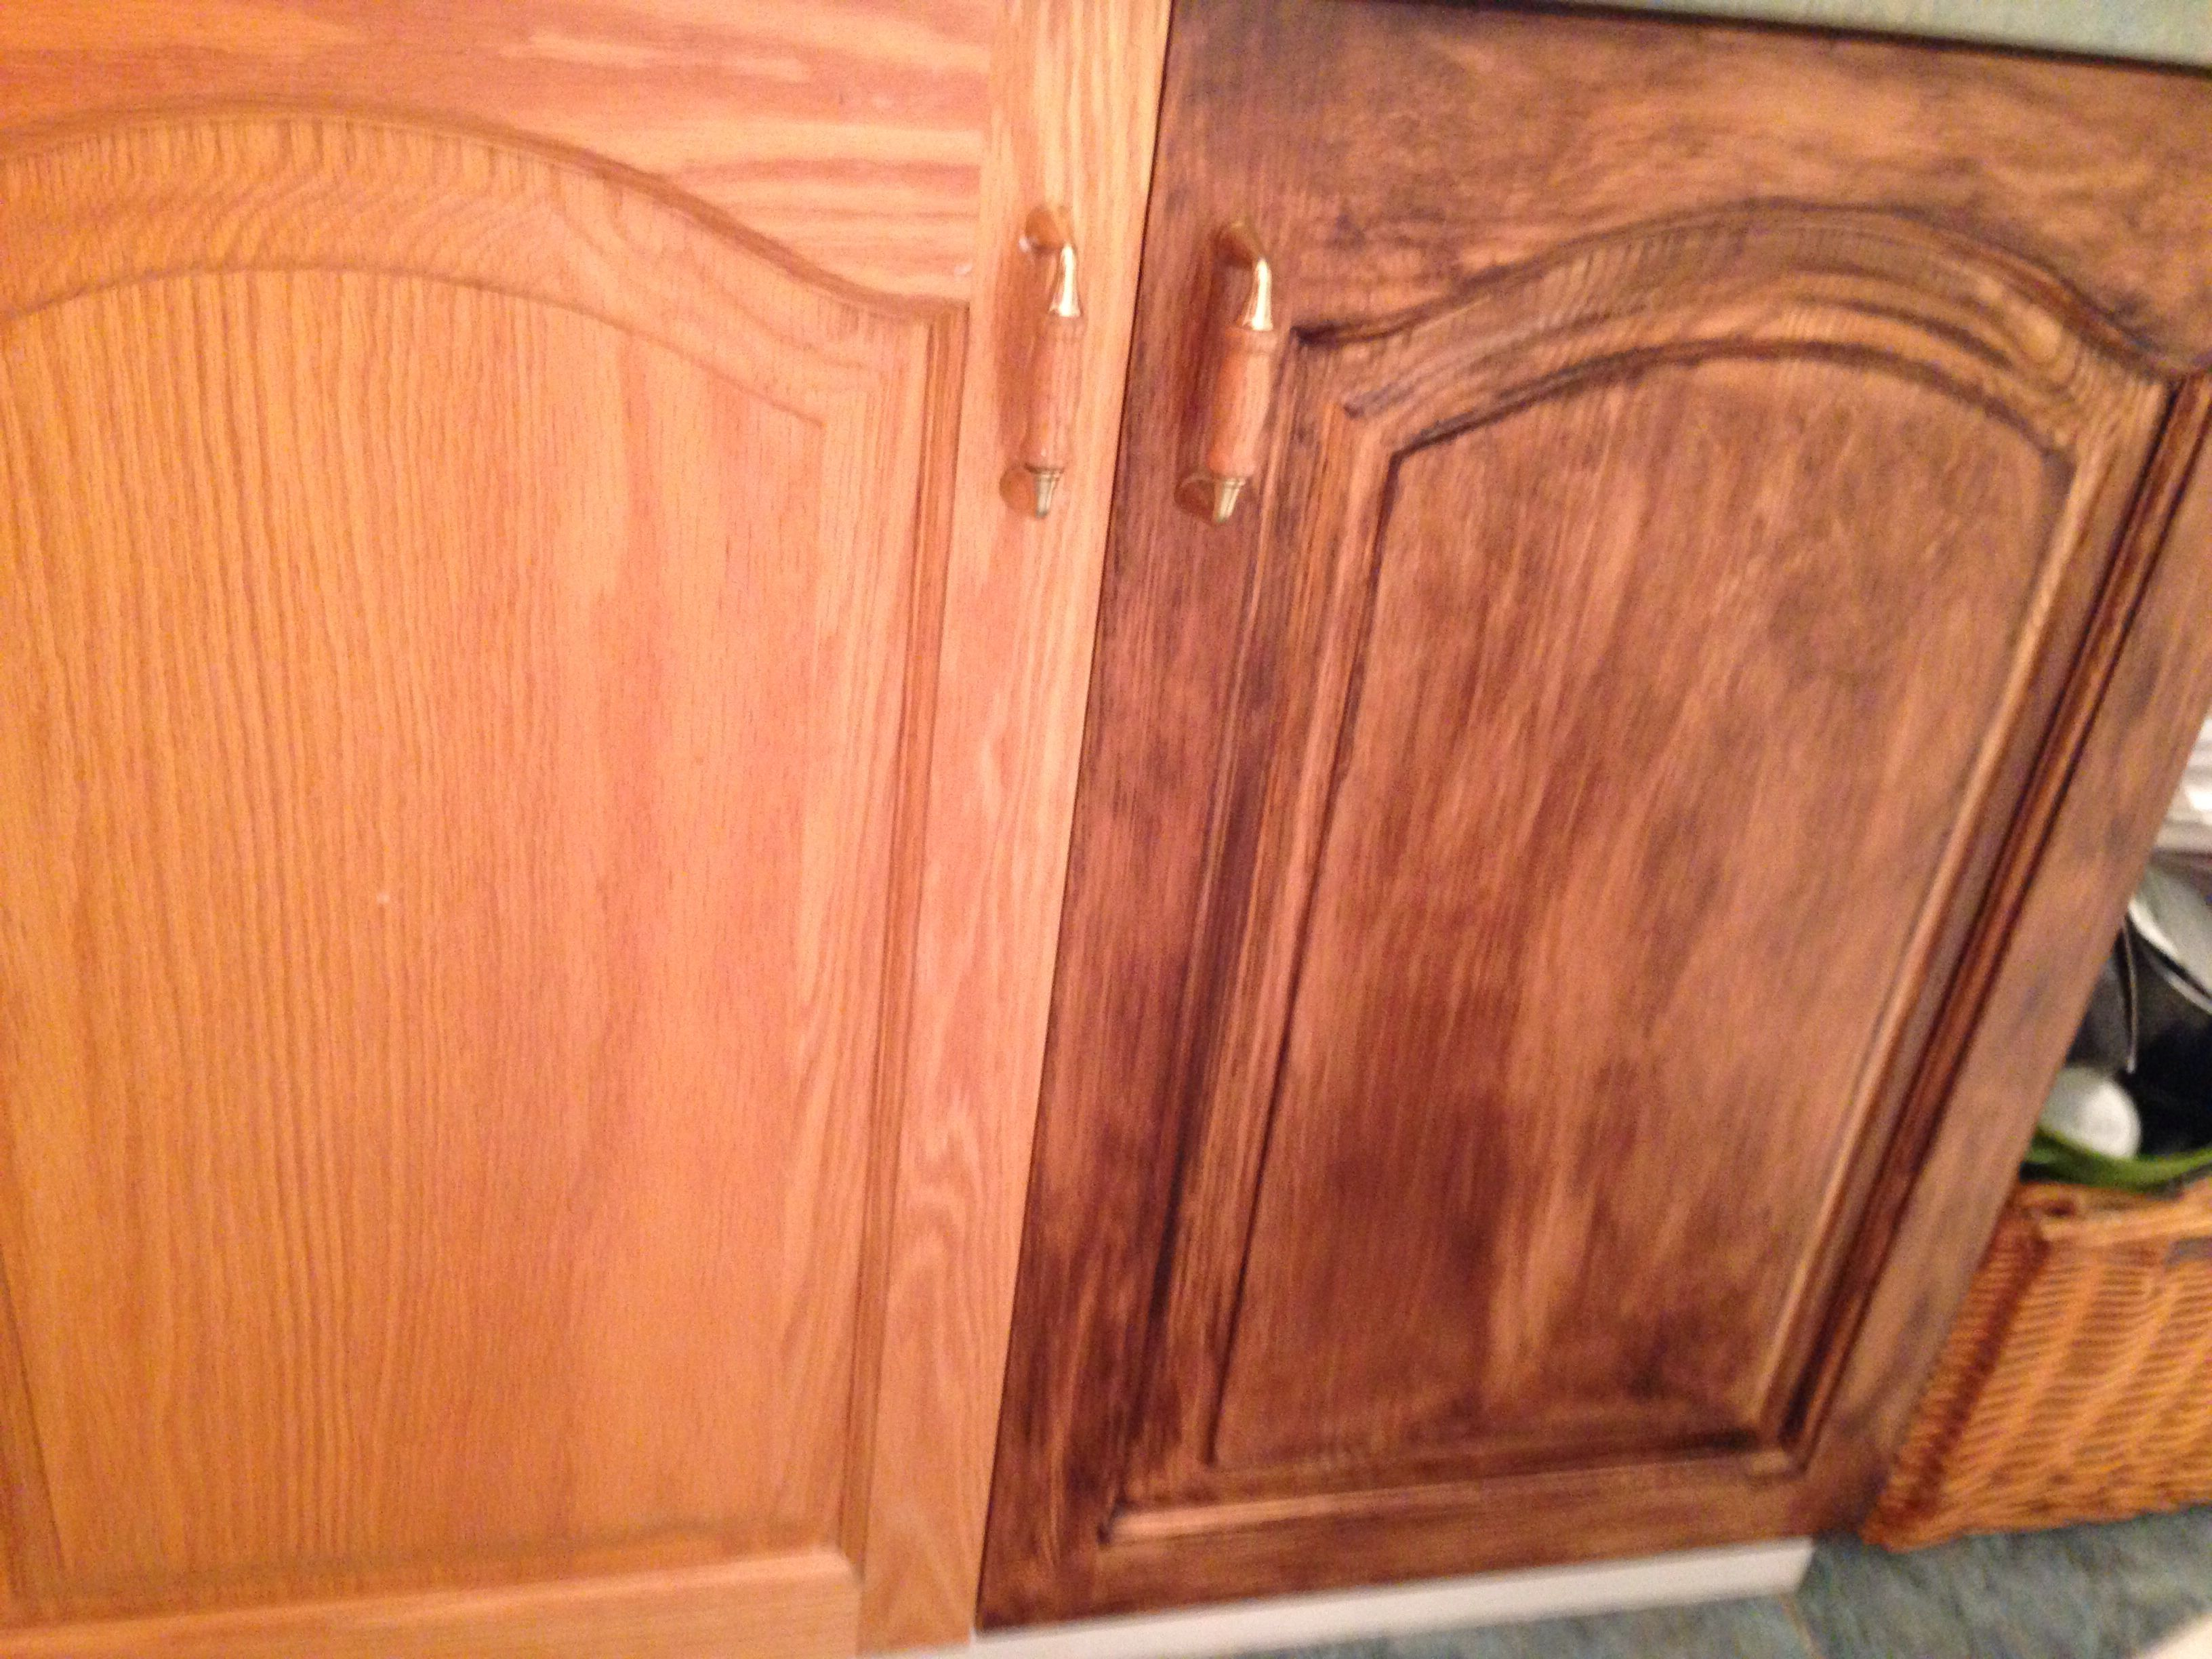 Old Oak Cabinet On Left And Stained With Minwax Gel Stain Color Chestnut Interiorpaintcolorssc Painting Oak Cabinets Kitchen Cabinet Colors Staining Cabinets